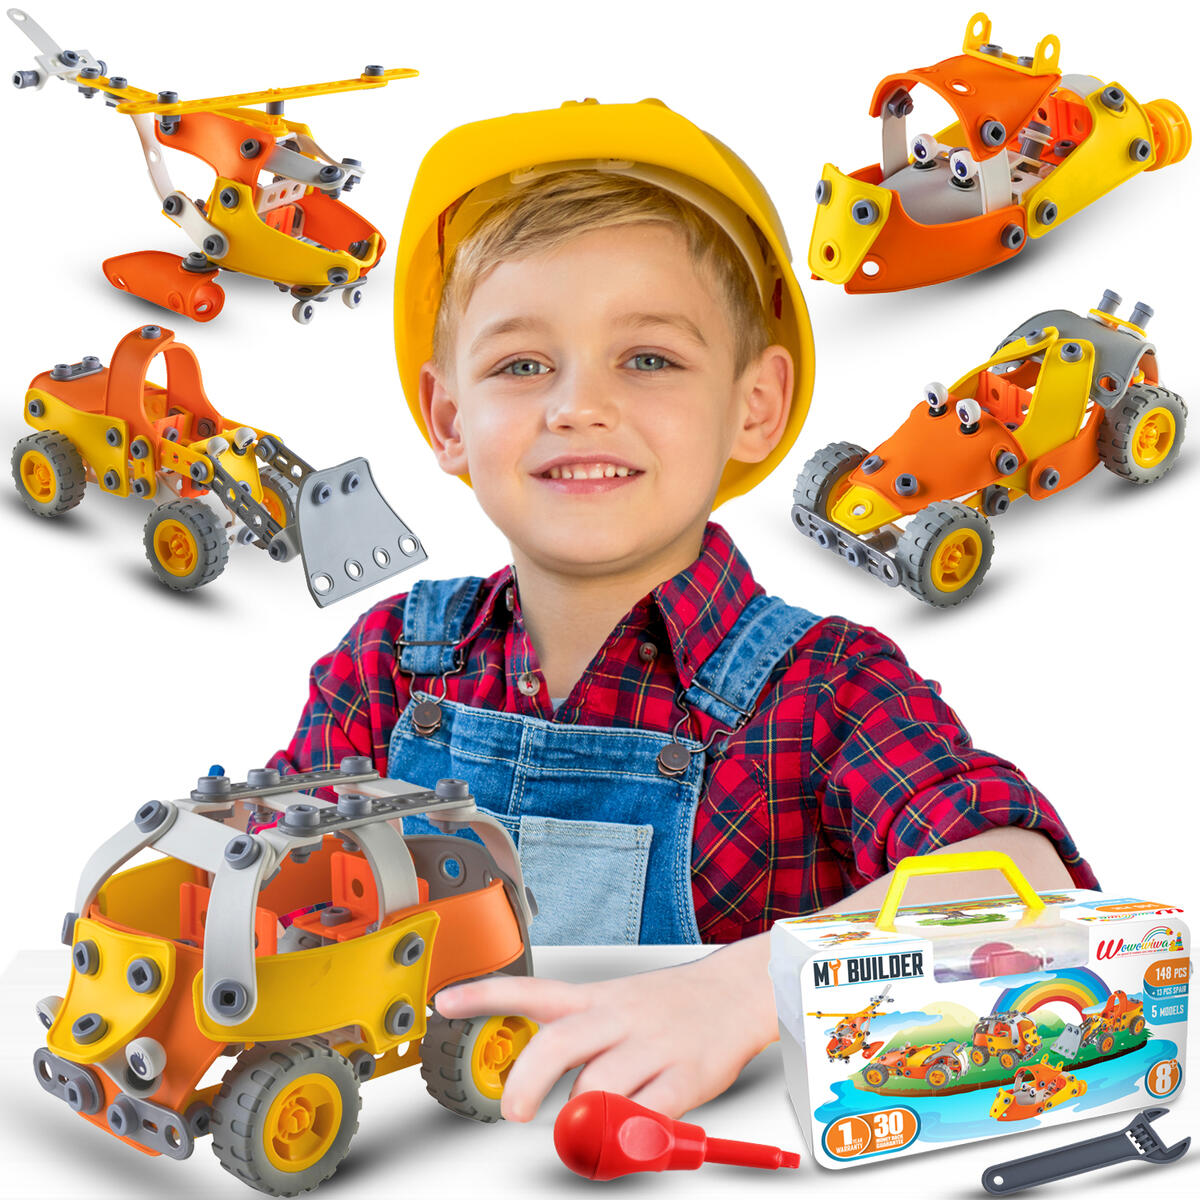 STEM Toy Building Set learning toy for Boys & girls 6-12 Erector set stem activities for kids ages 5-7 Construction Engineering